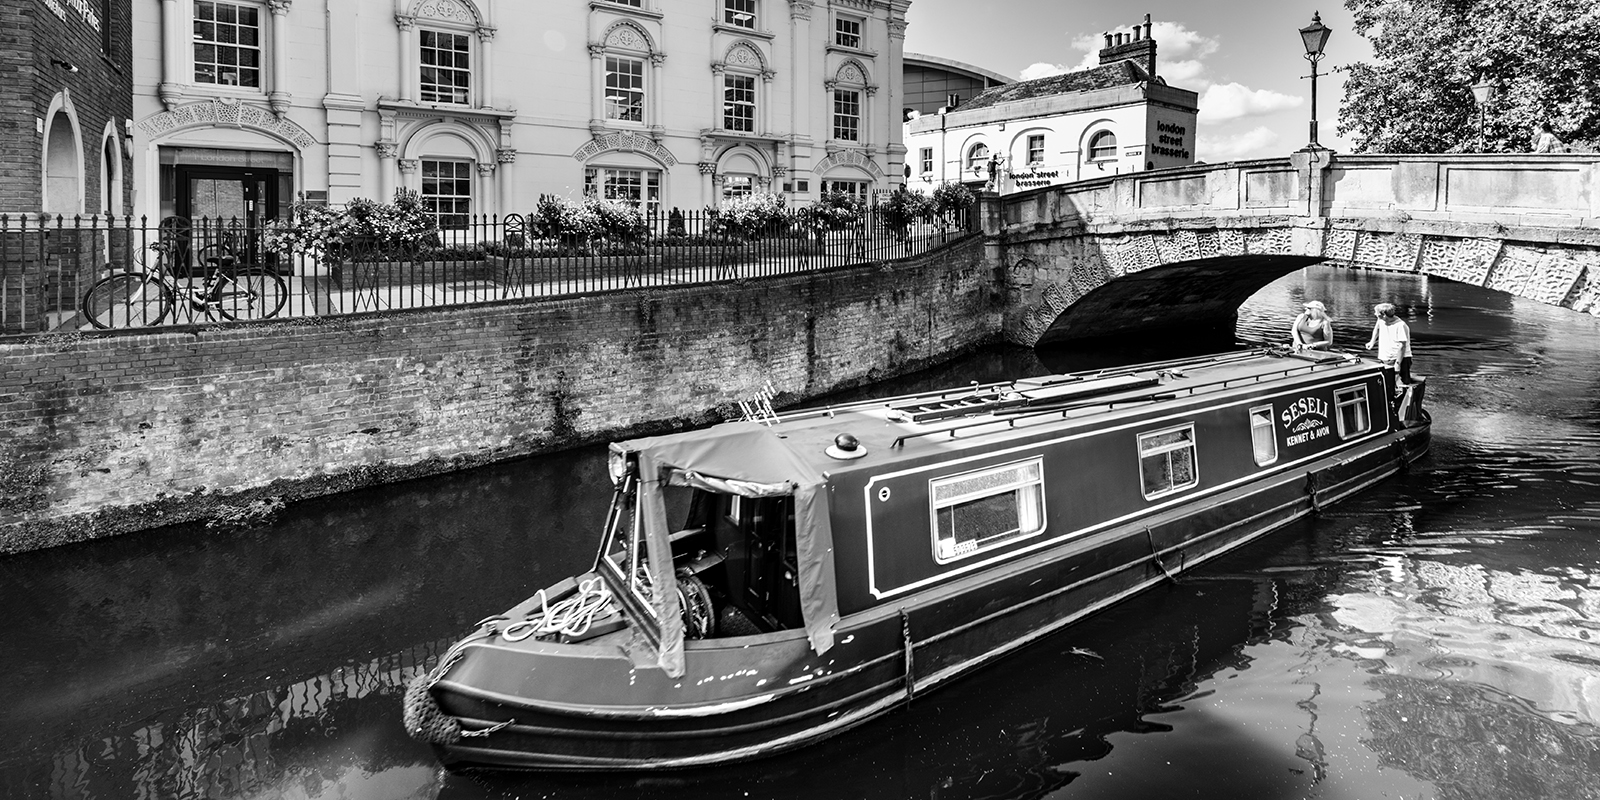 TCN area boat on the river in Reading